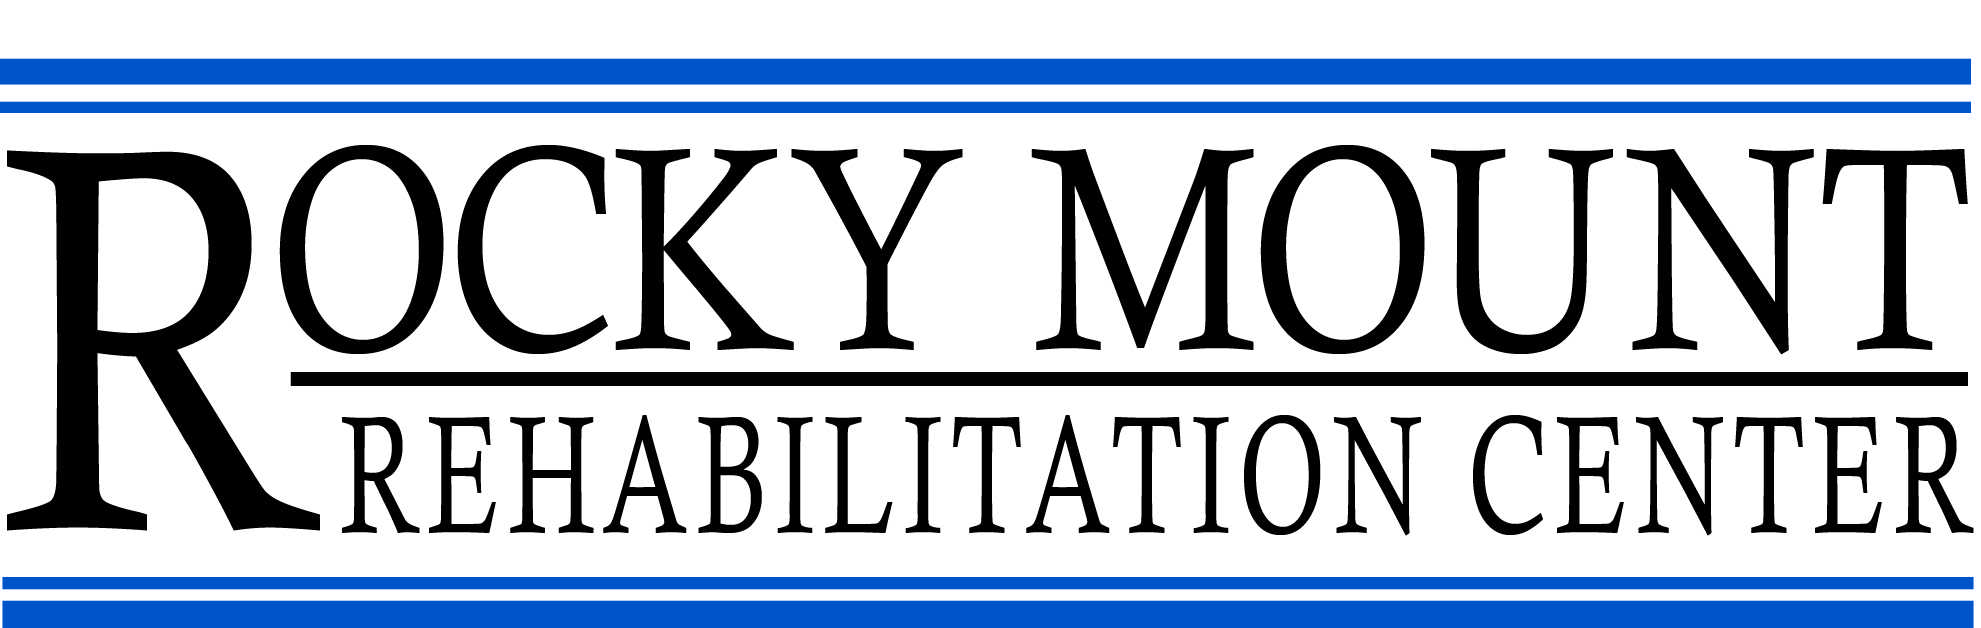 Rocky Mount Rehabilitation Center logo